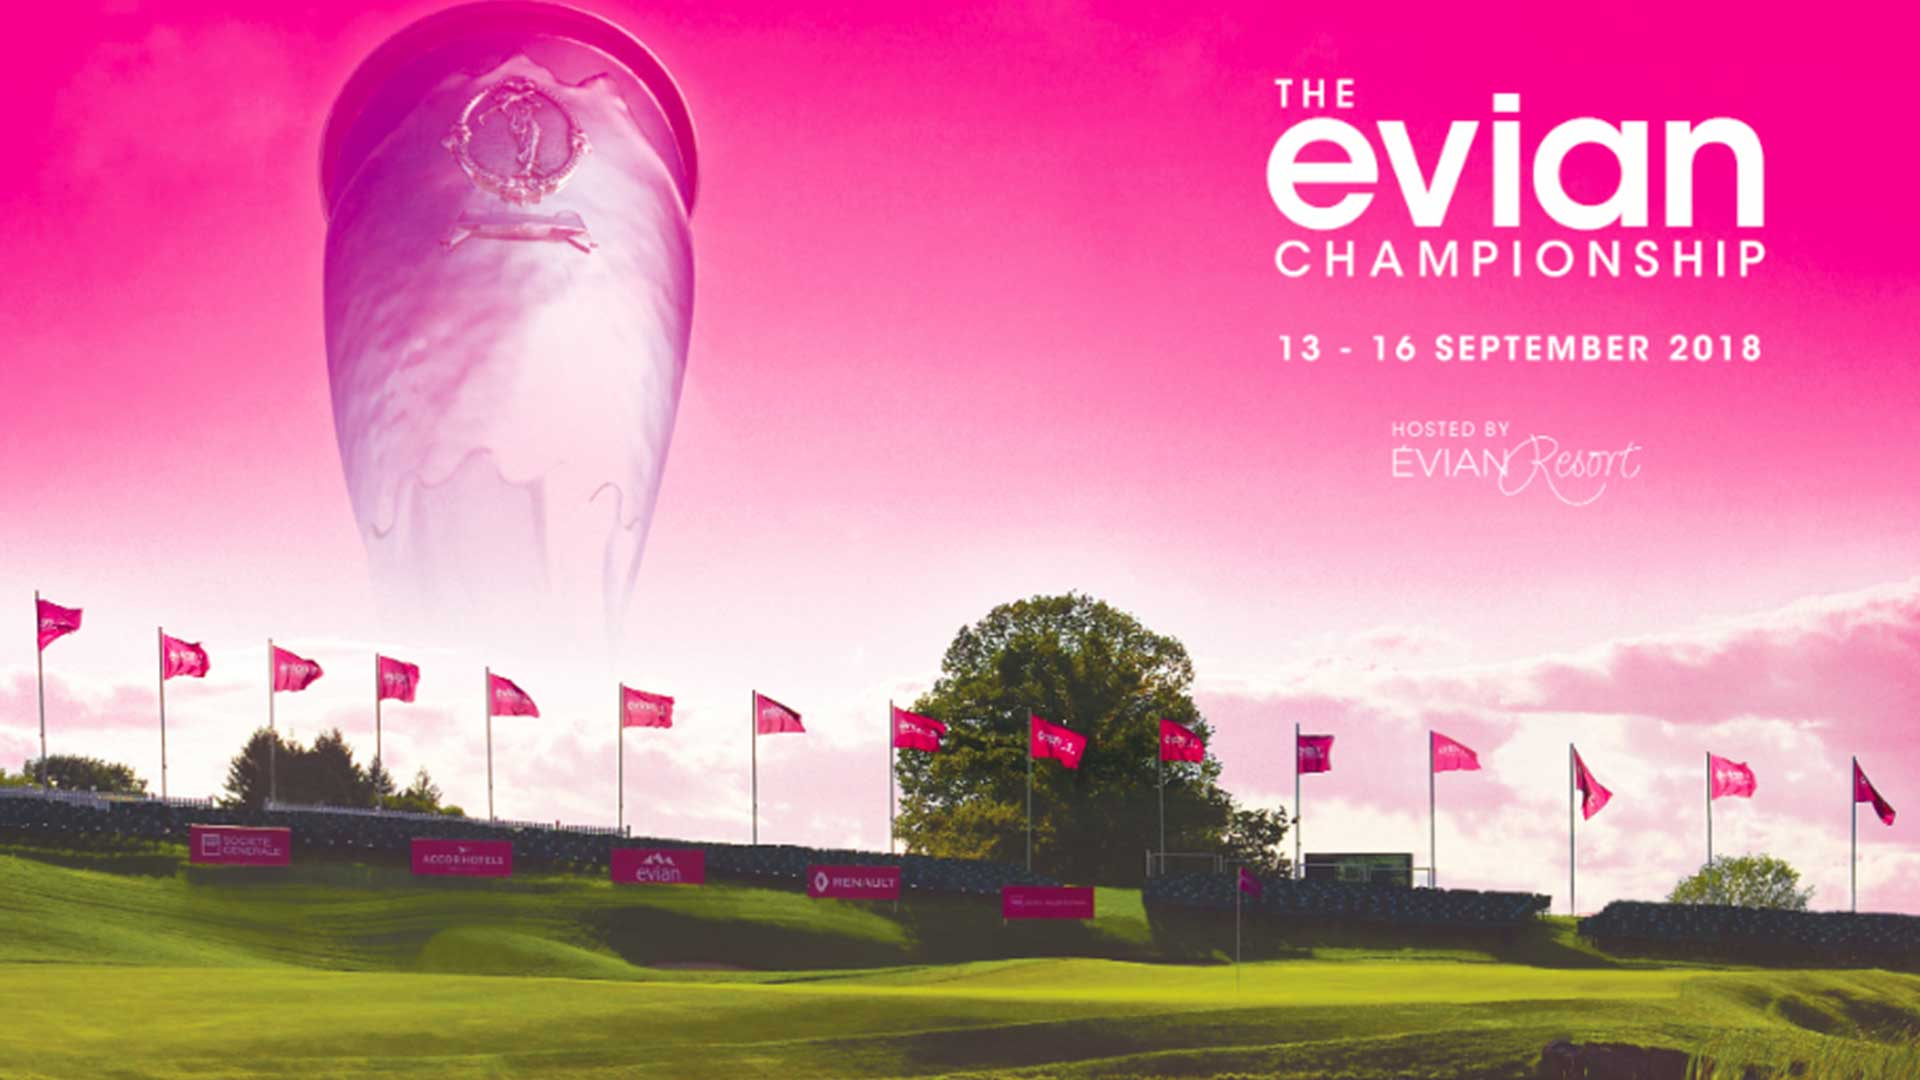 Innovative experiences & lifestyle at the Evian Championship 2018